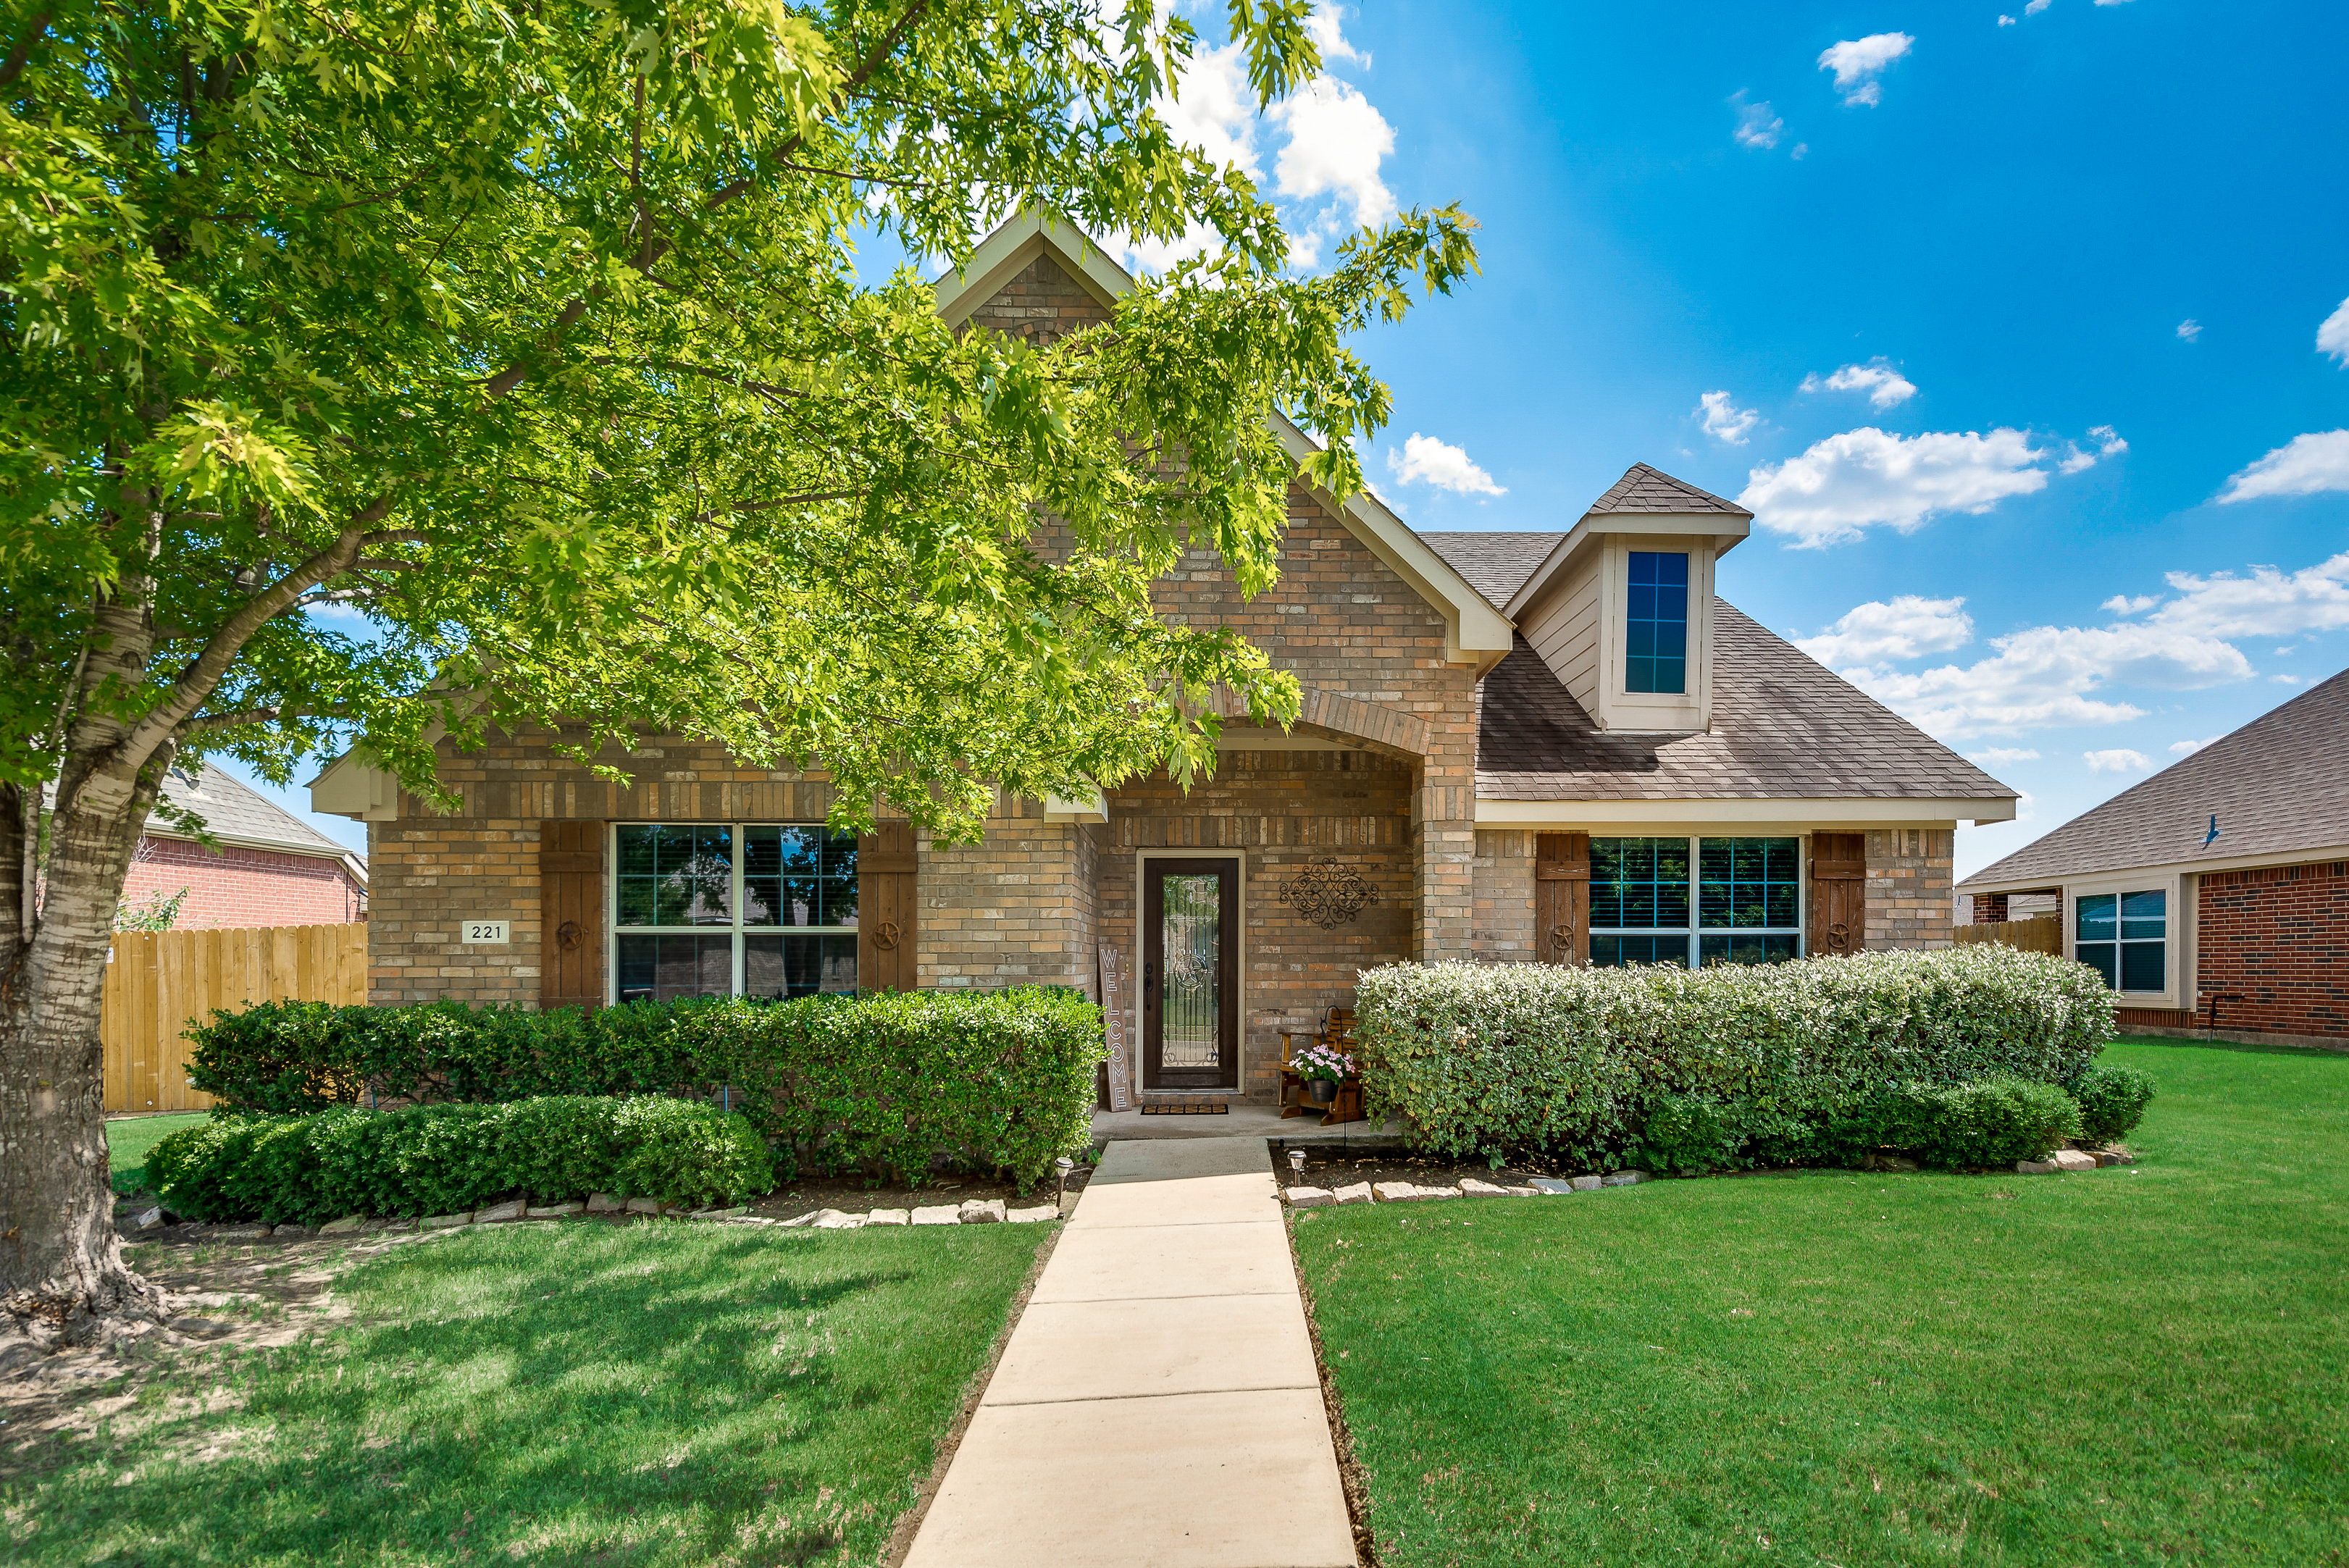 221 Audobon Lane in Royse City